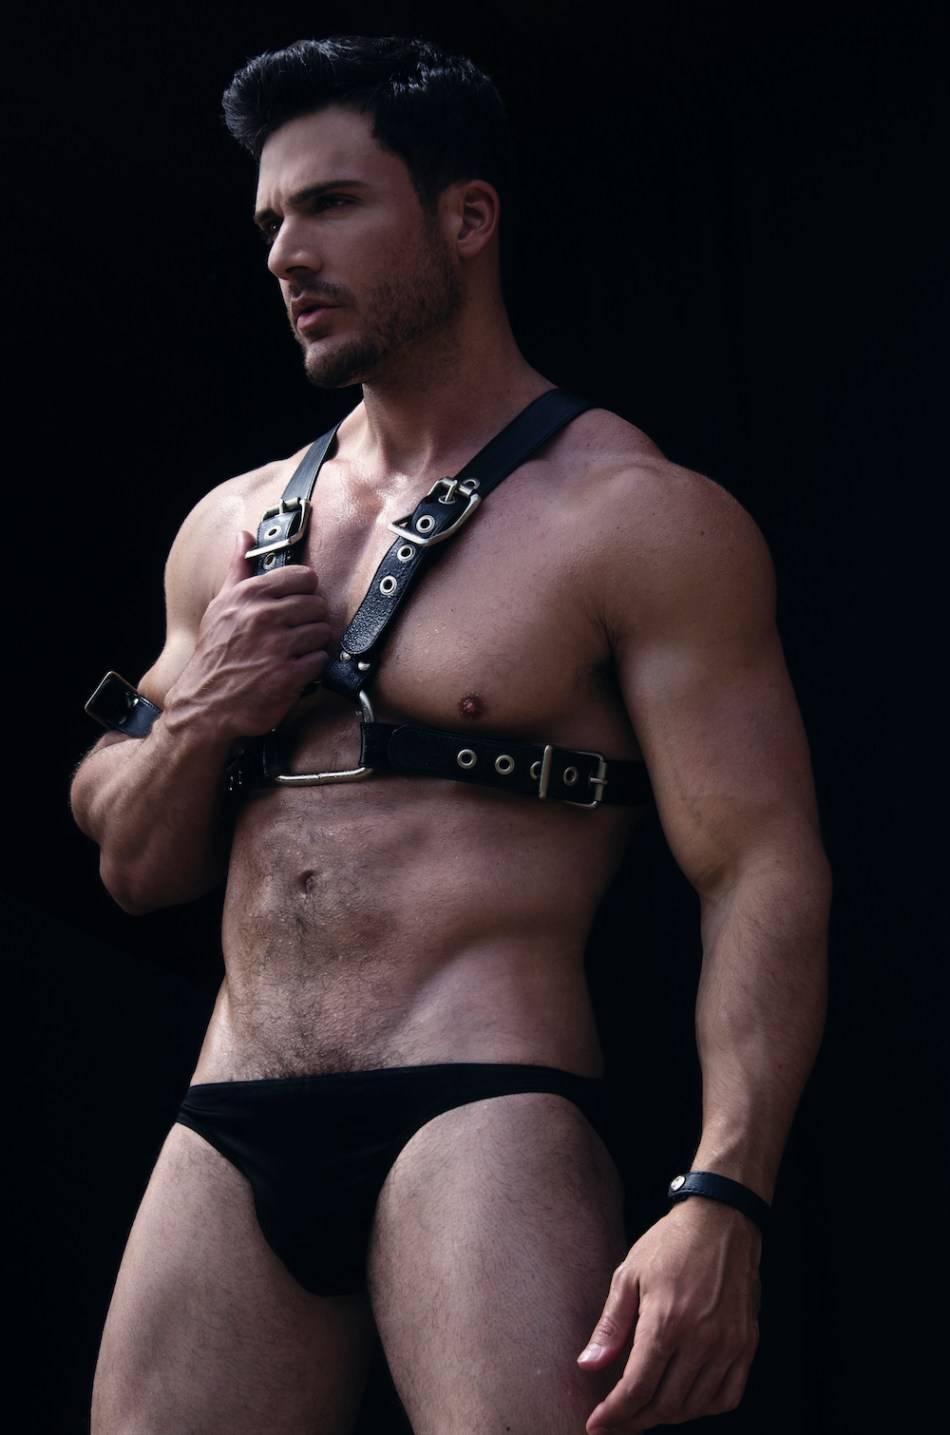 Fusco by Hoover Pnv Network3